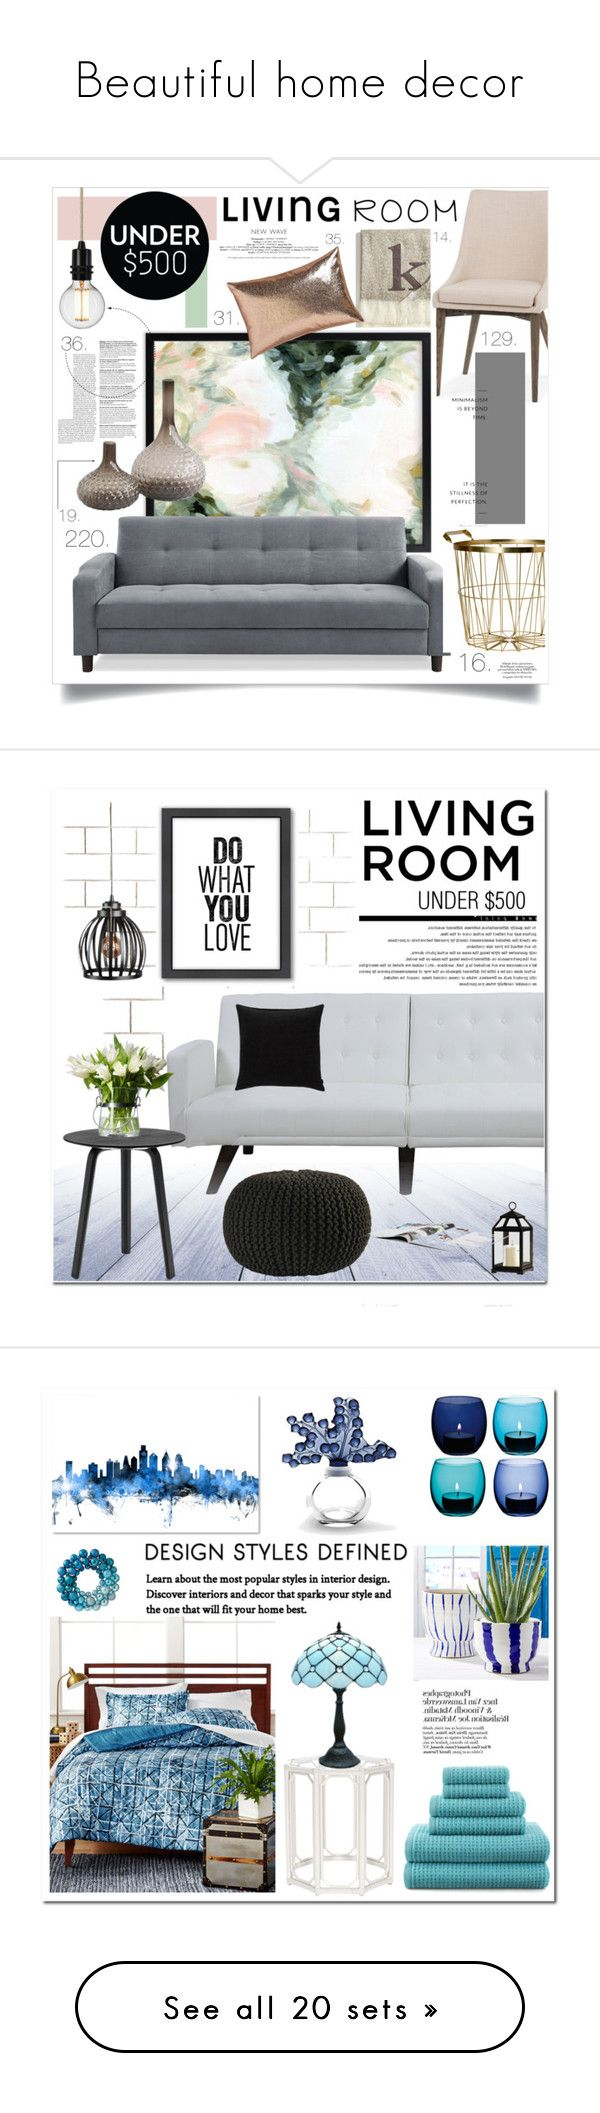 Beautiful home decor by mary909090 on Polyvore featuring polyvore interior interiors interior design home home decor interior decorating Nordstrom Illume H&M CB2 livingroom under500 Improvements HAY Biddeford JAG Zoeppritz Americanflat Arche living room Home Decorators Collection Lalique LSA International Trademark Fine Art Ellison First Asia JCPenney Home bedroom Avery Arteriors Worlds Away Lori Shinal Interiors Ambra Safavieh Uttermost Sunpan WALL Armen Living Mina Victory Cyan Design…